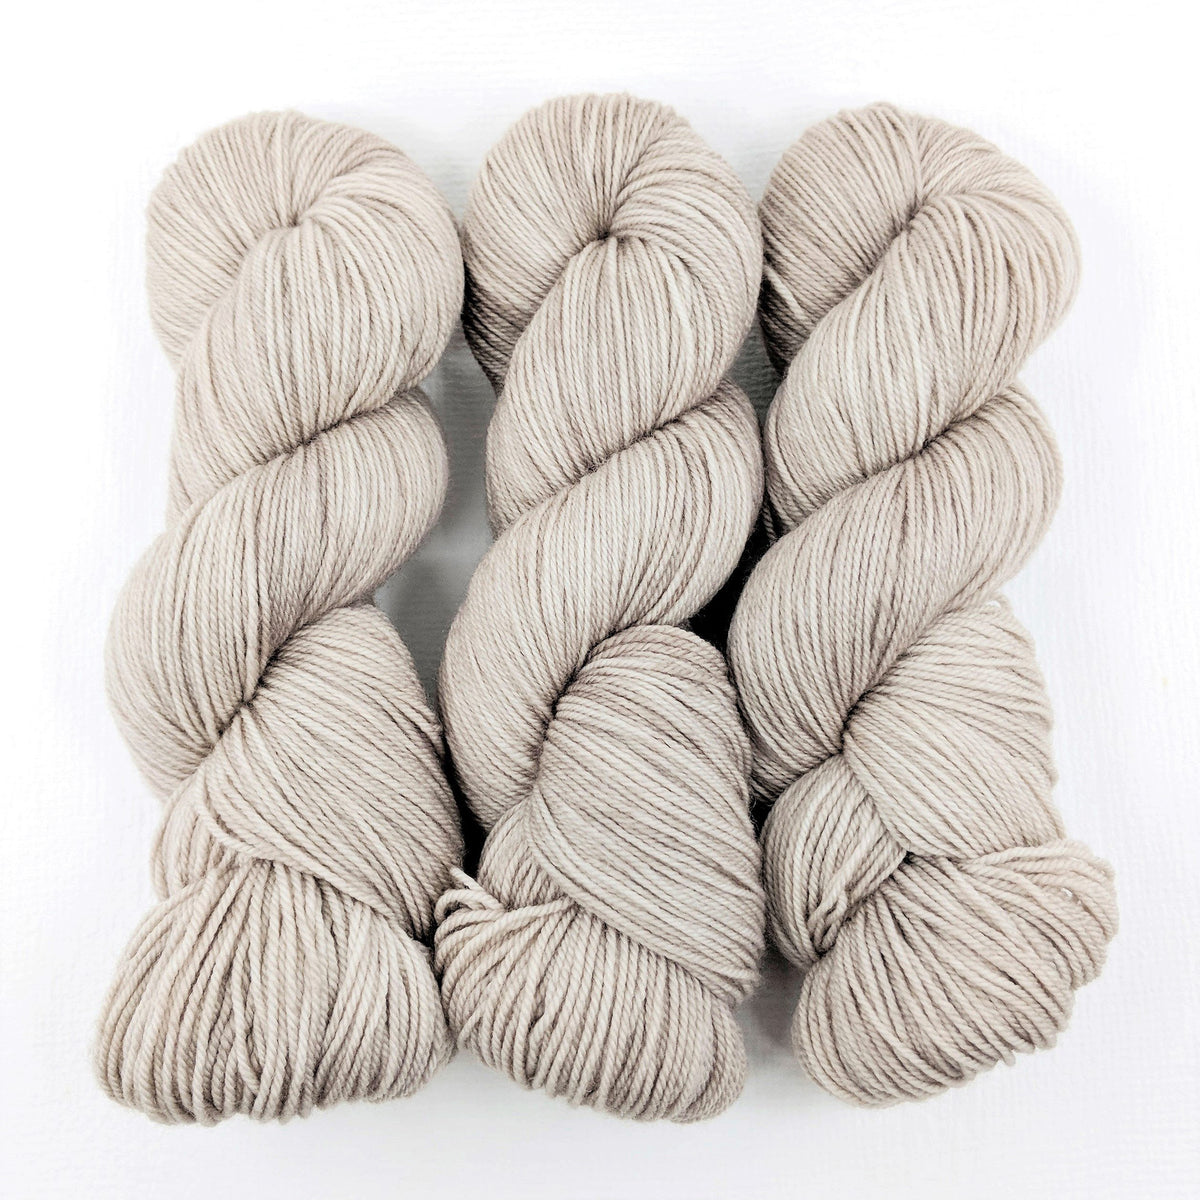 The Softer Side of Linen - Socknado Fingering - Dyed Stock